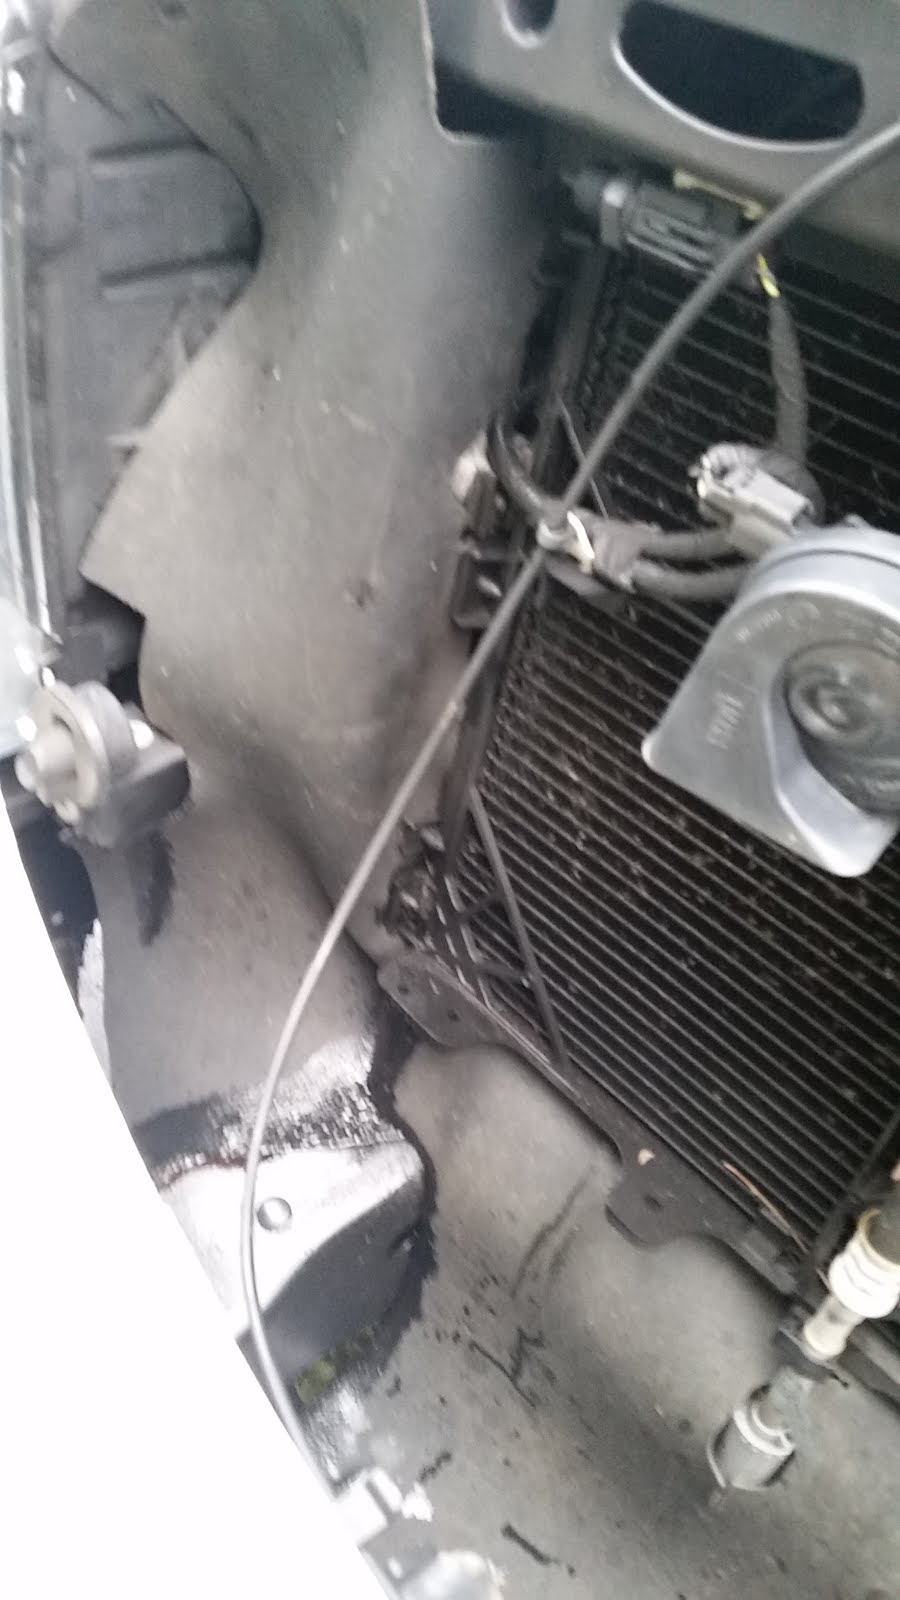 medium resolution of i started experiencing the age old wheezing sound and when i checked under the hood the condenser had splatters of oil on it